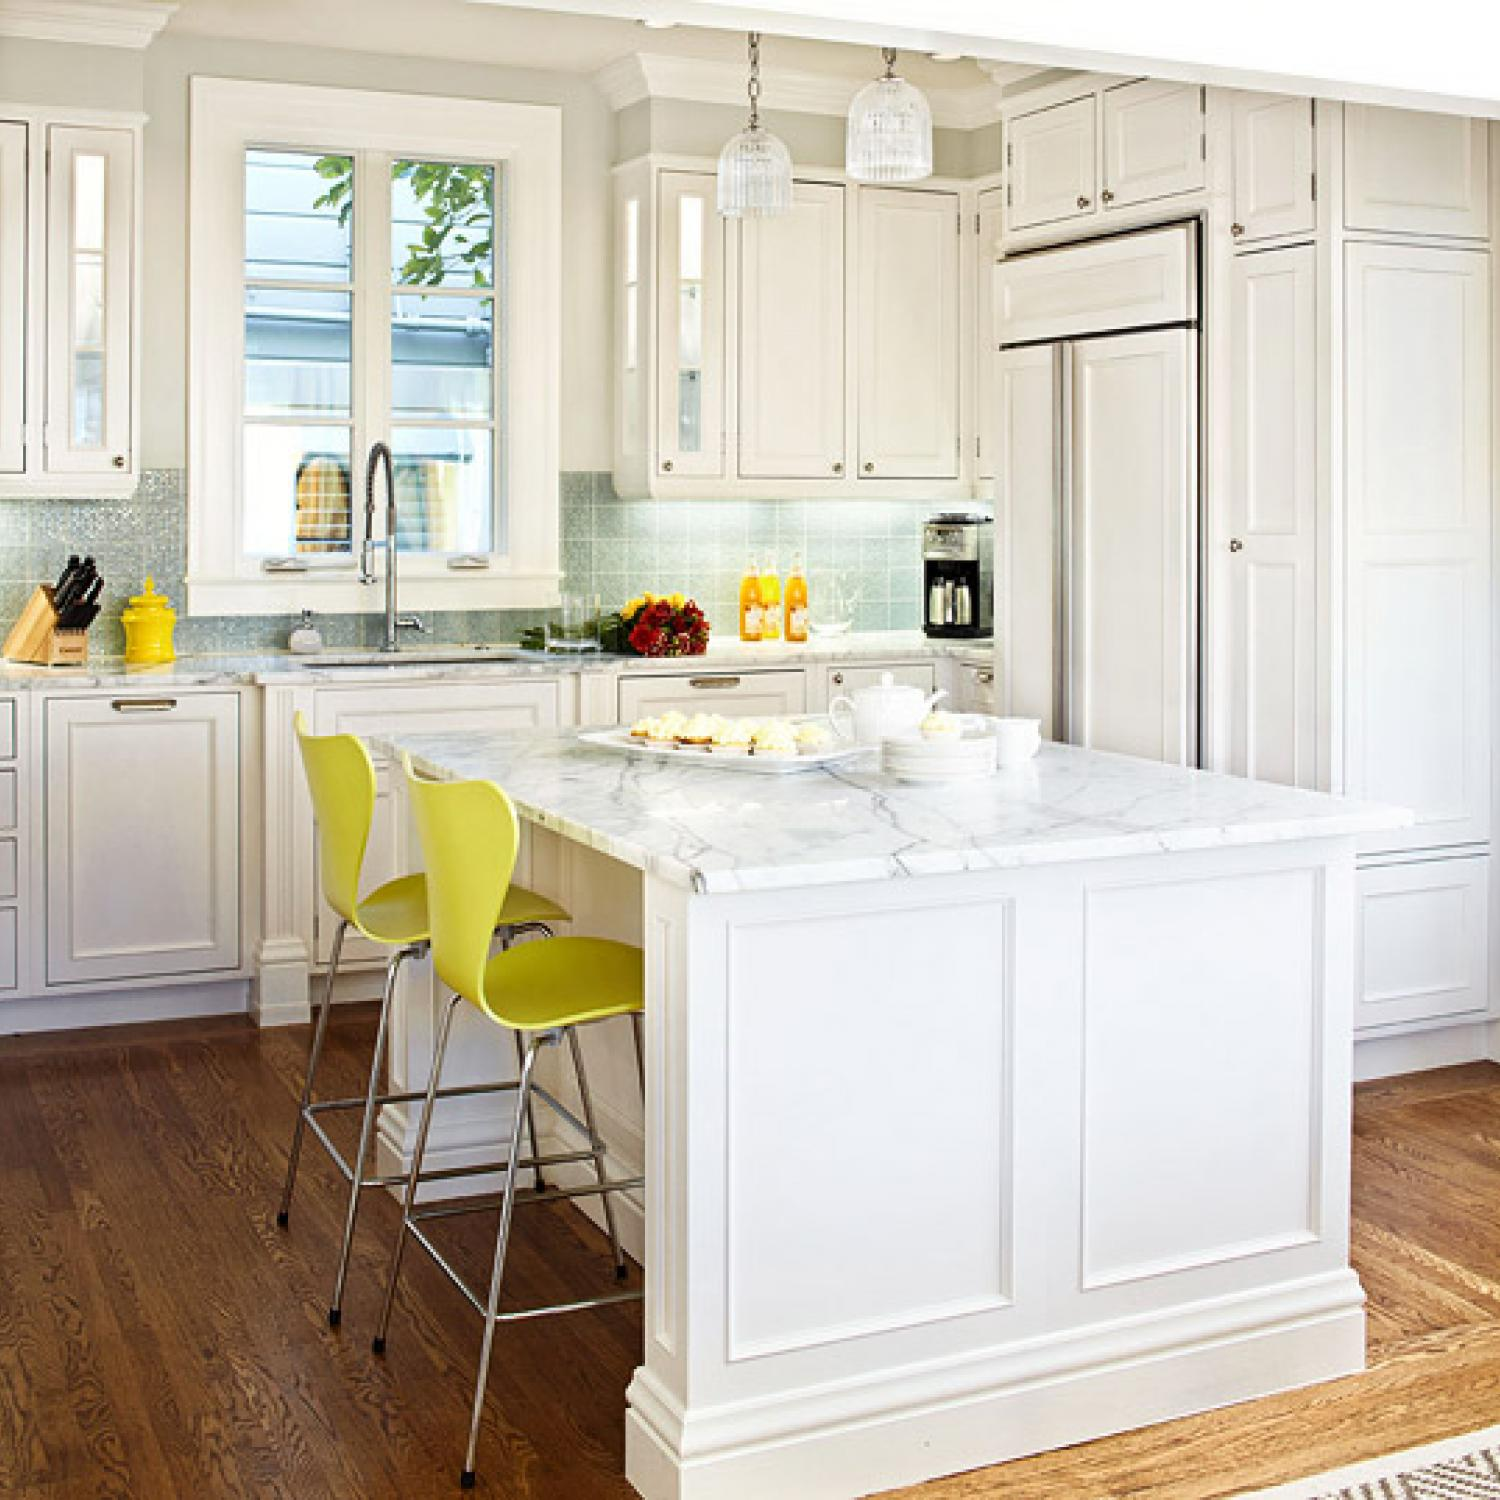 Design ideas for white kitchens traditional home for Home ideas kitchen